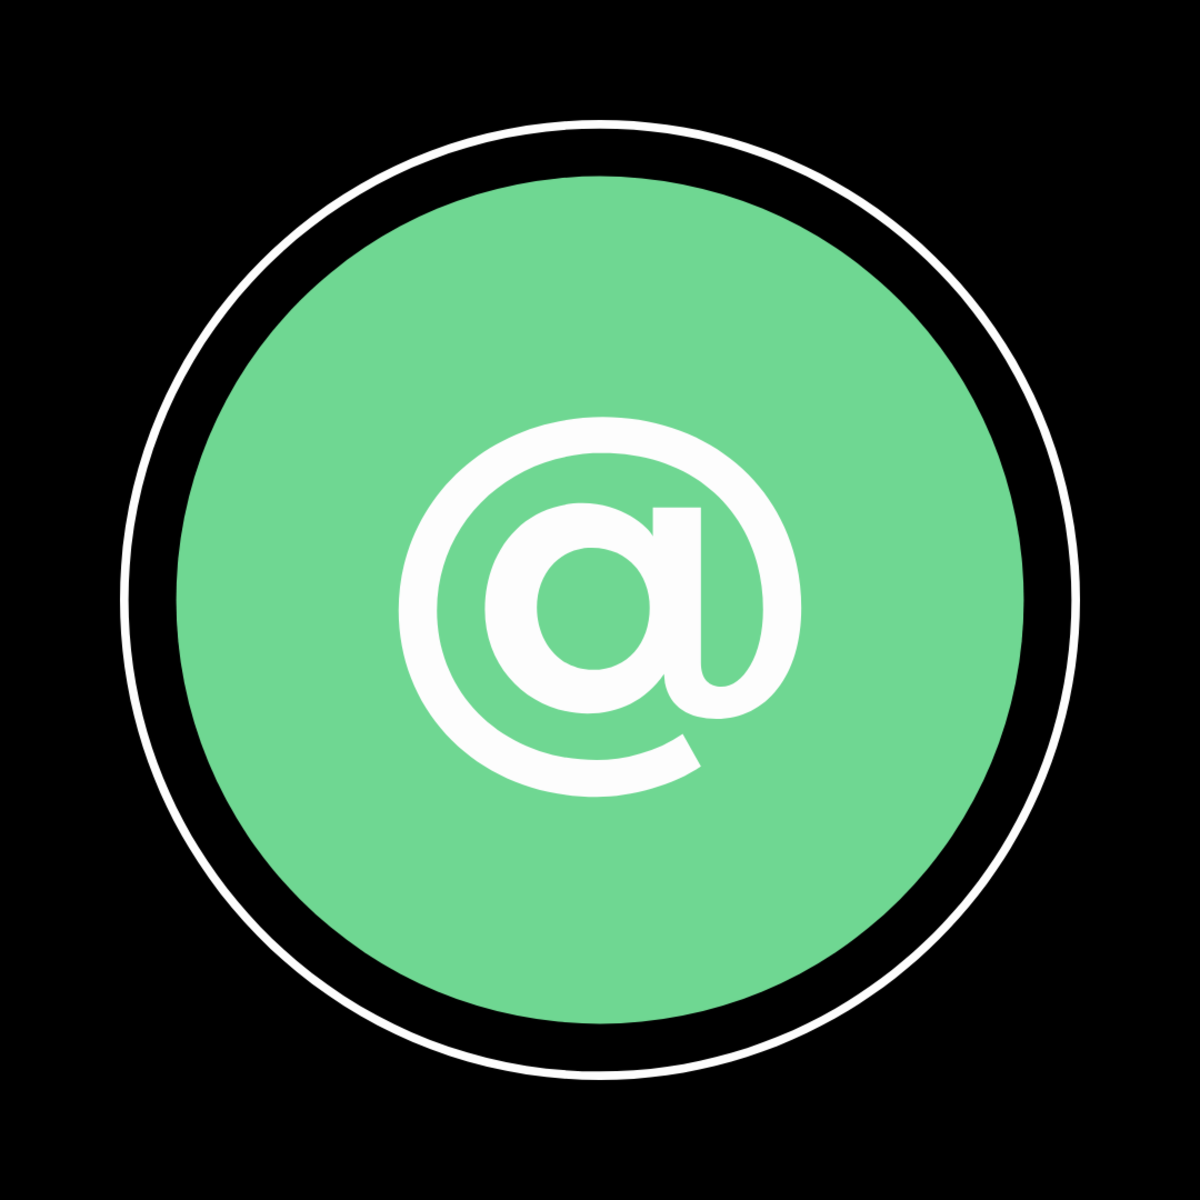 The '@' symbol has become synonymous with email in the modern world.  As well as being a convenient way to send letters and photos, however, emails can also contribute to a sense of 'information overload' for many people, especially in the workplace.